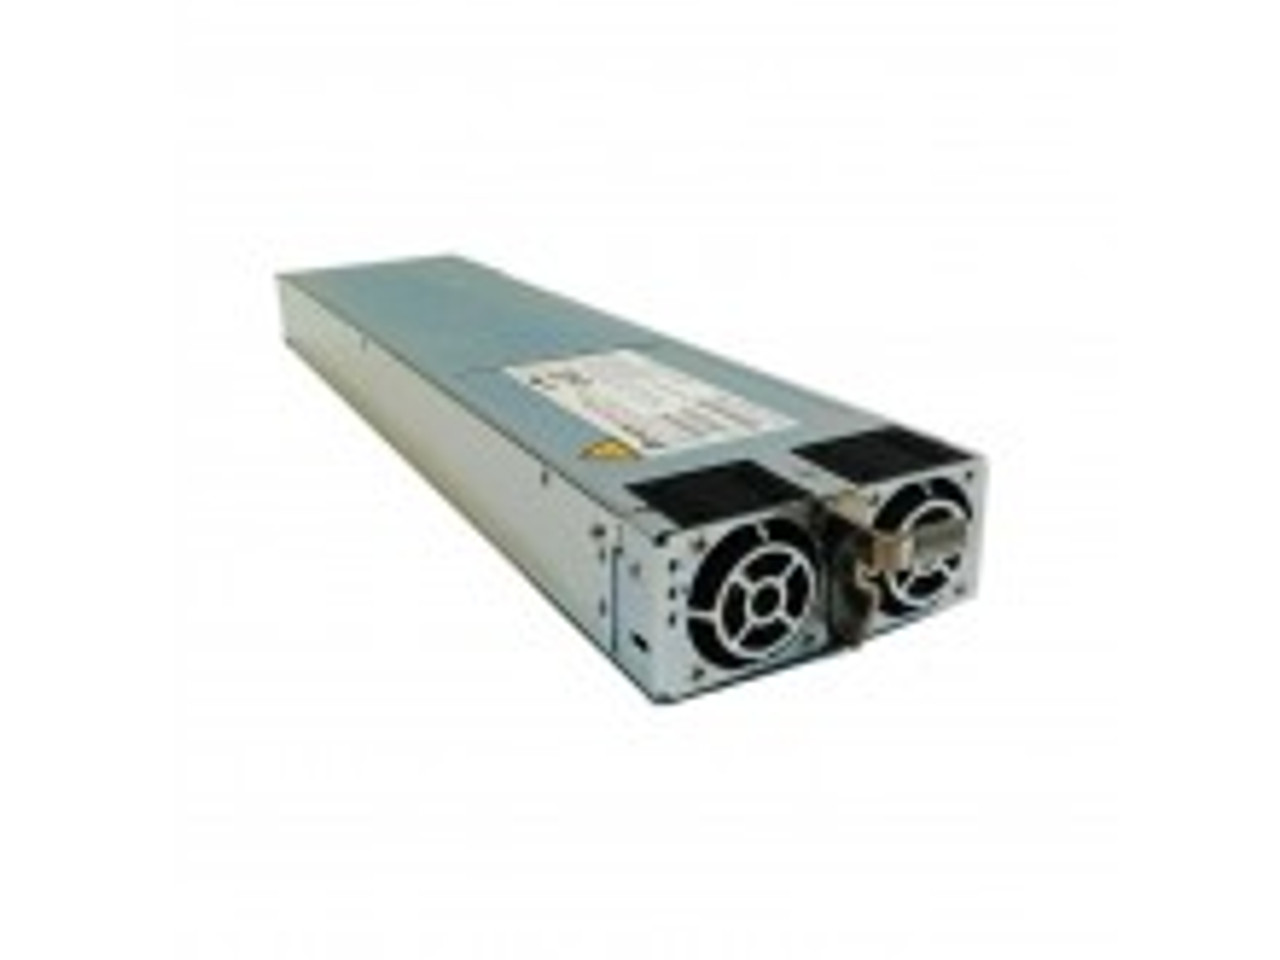 Genuine Cisco PWR-2KW-DC-V2 Power Supply for ASR 9006 Router